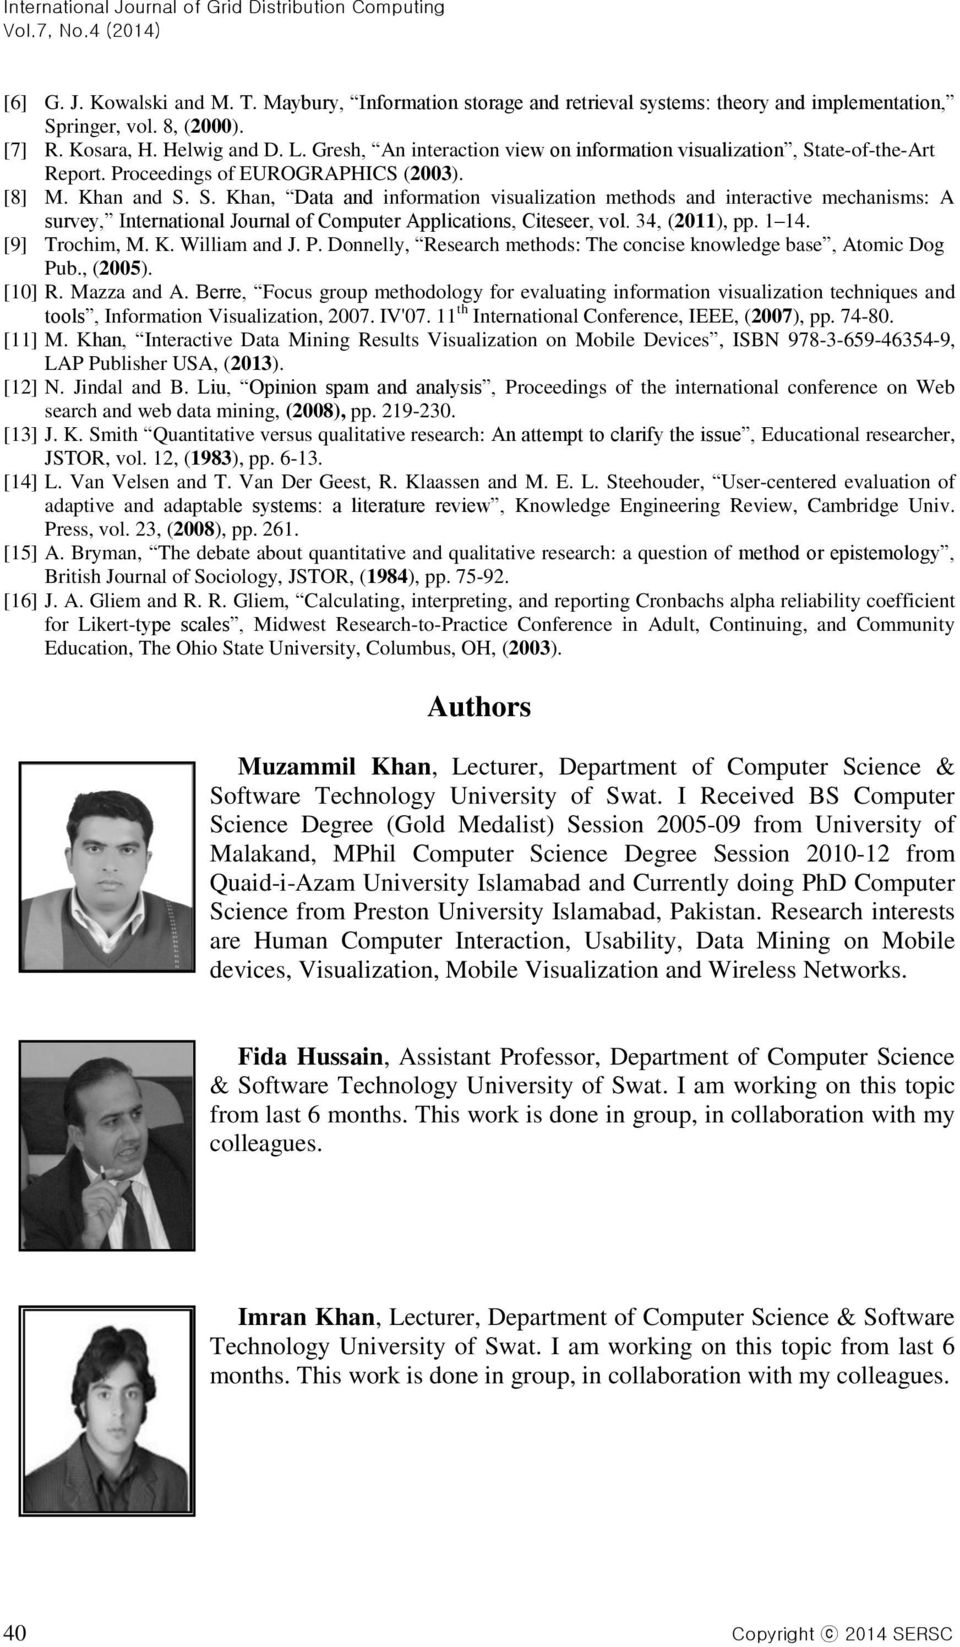 ate-of-the-Art Report. Proceedings of EUROGRAPHICS (2003). [8] M. Khan and S.